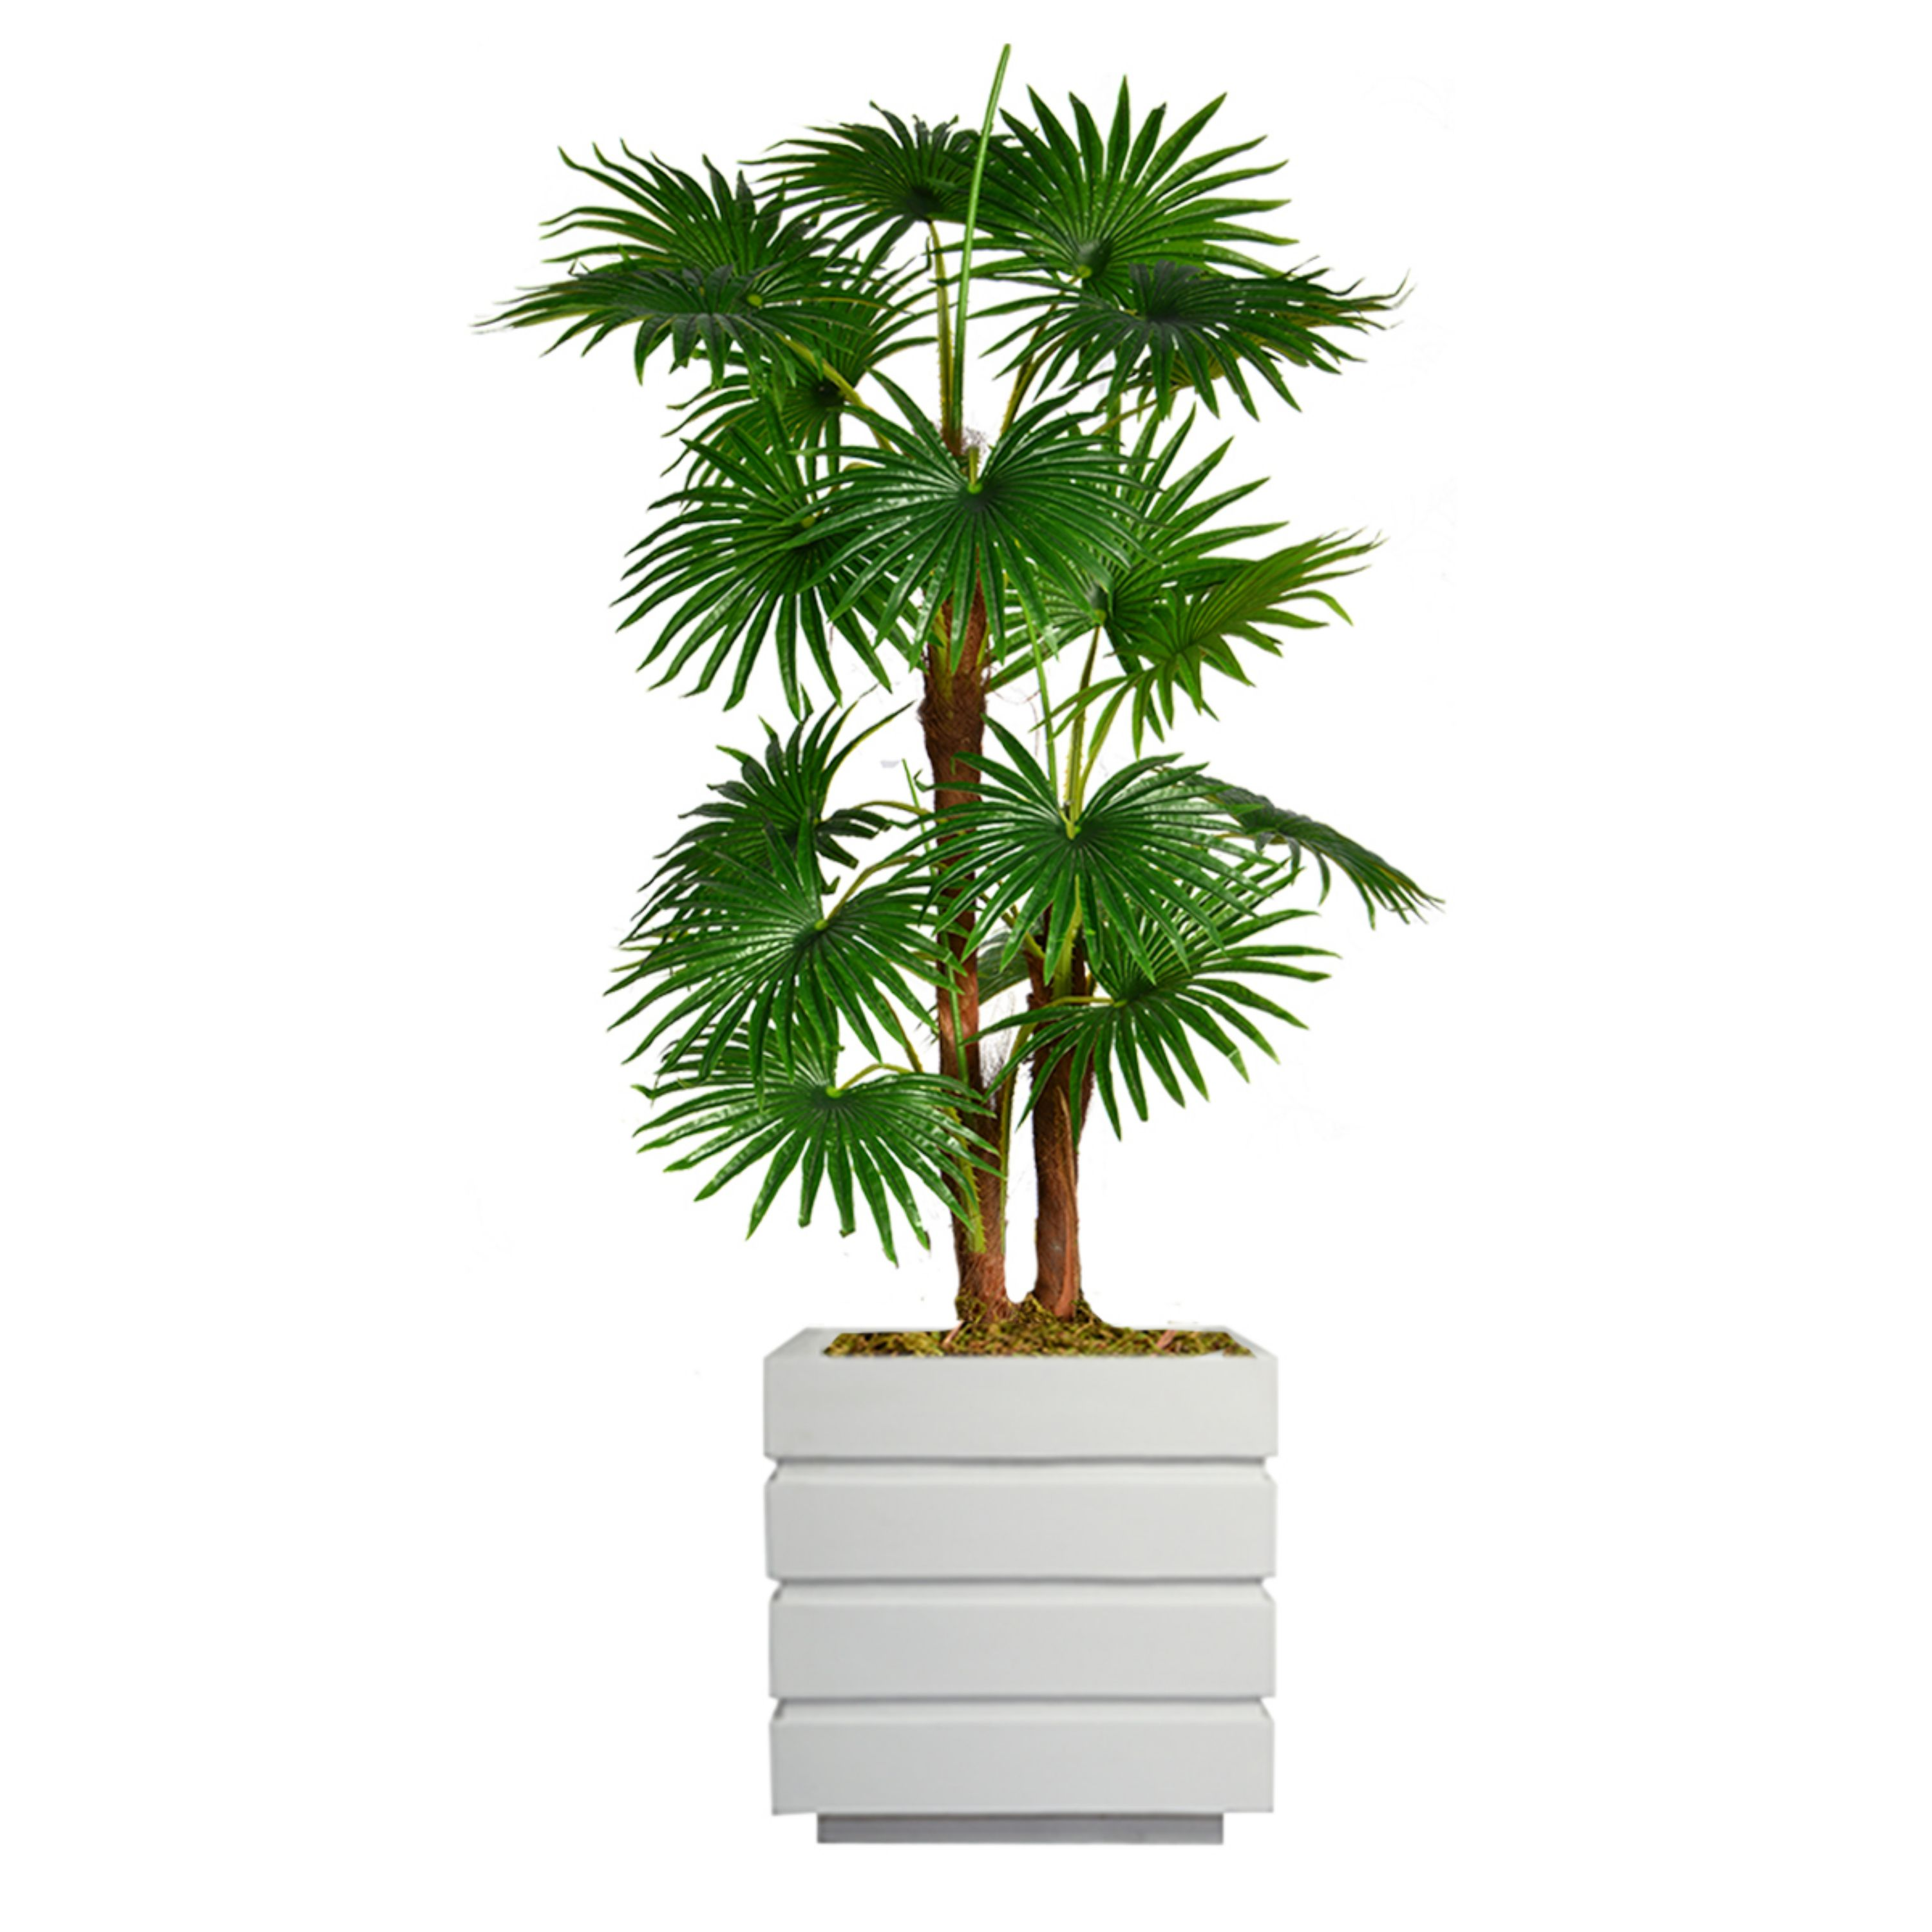 """54"""" Tall Fan Palm Tree Artificial Indoor/ Outdoor Décor Faux Burlap Kit and Fiberstone Planter By Minx NY"""